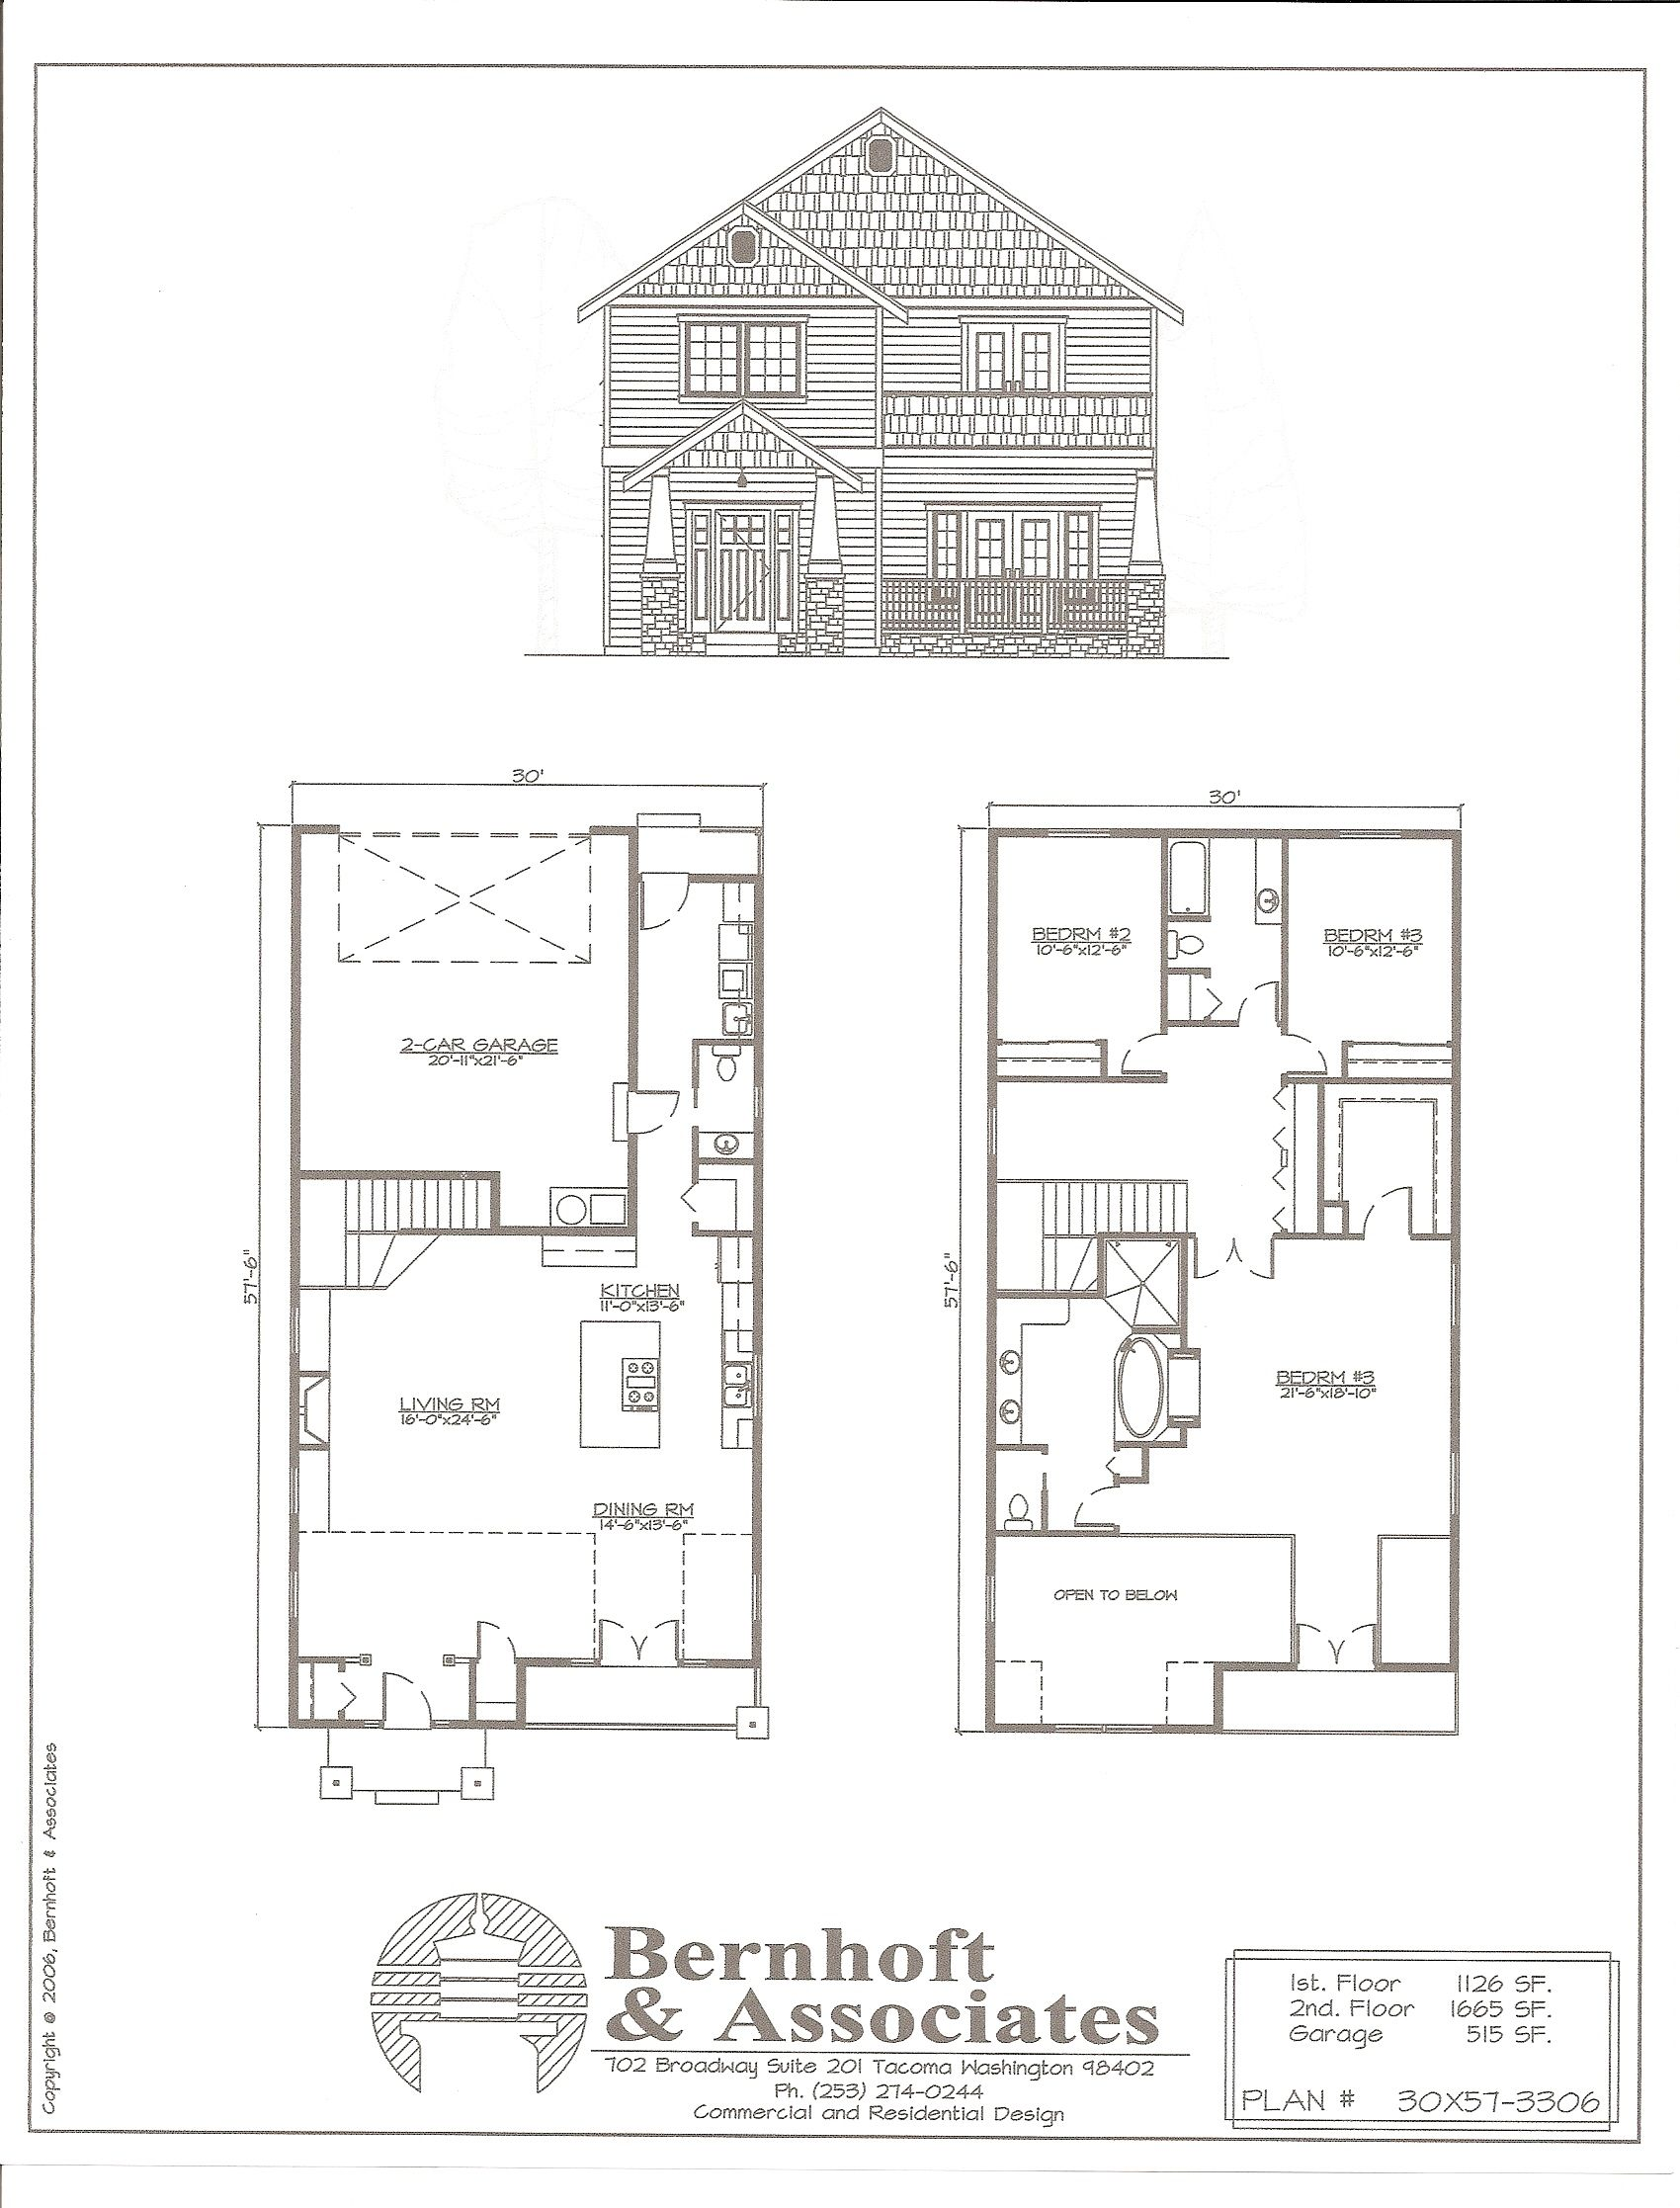 Single Family Dwelling House Plans Plan Lot Bedroom Story Small House Plans House Design How To Plan